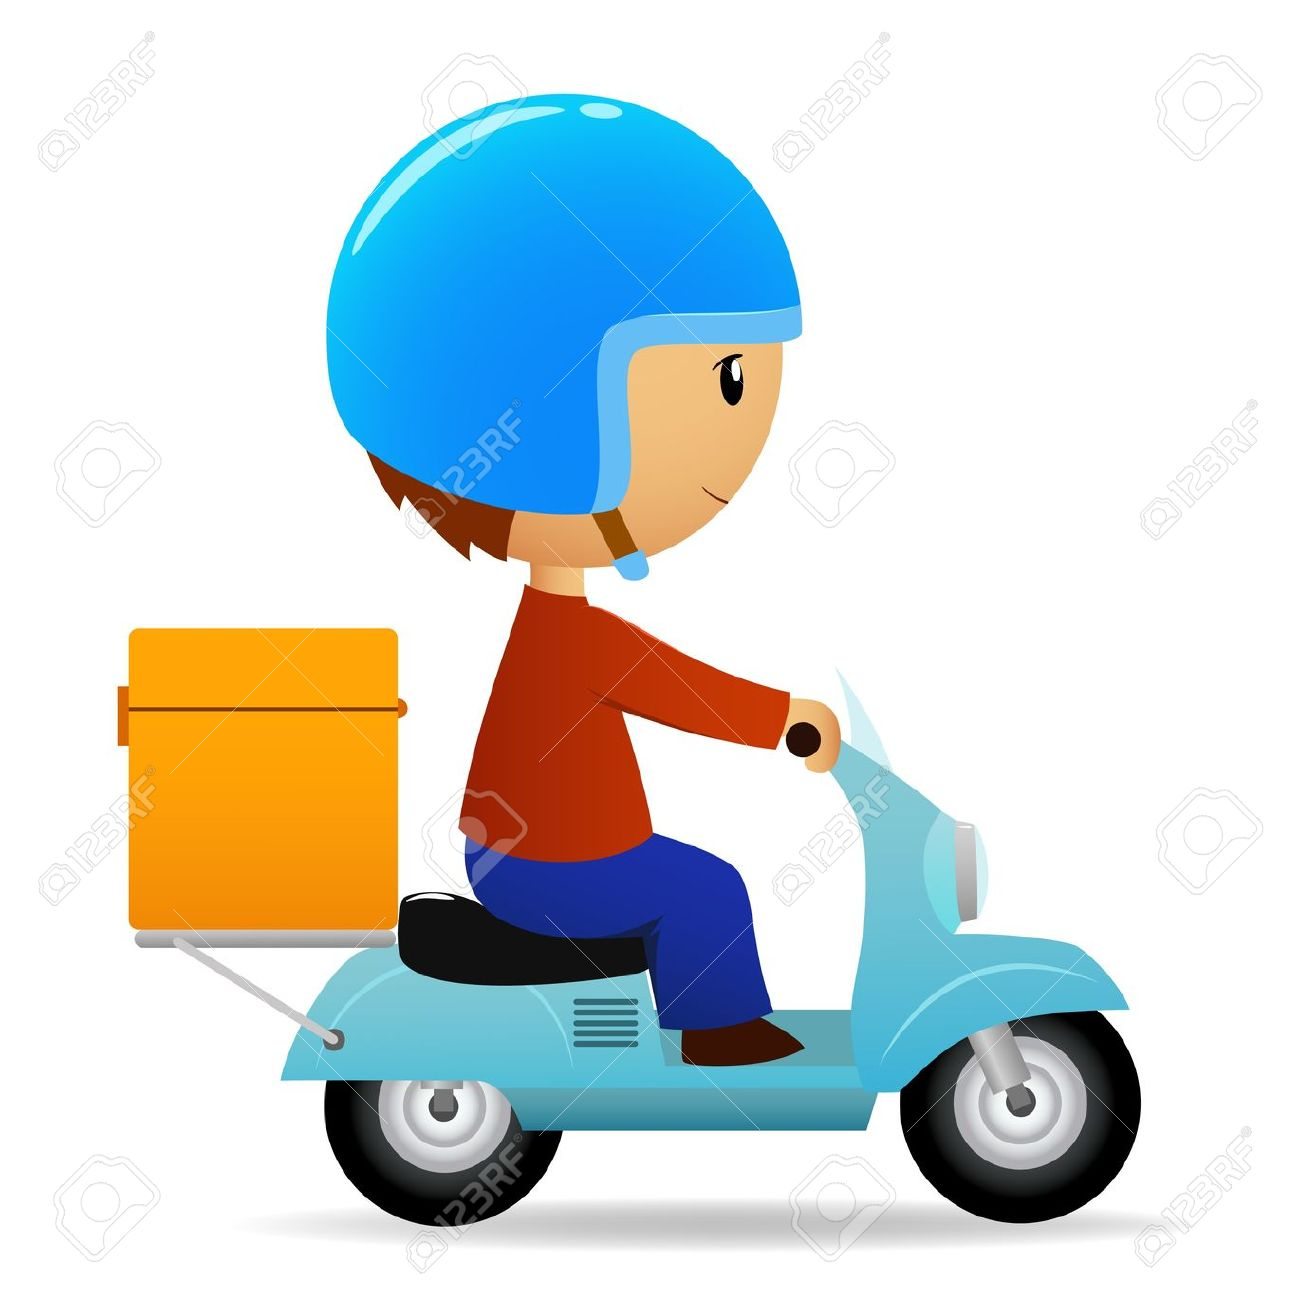 Home delivery clipart.